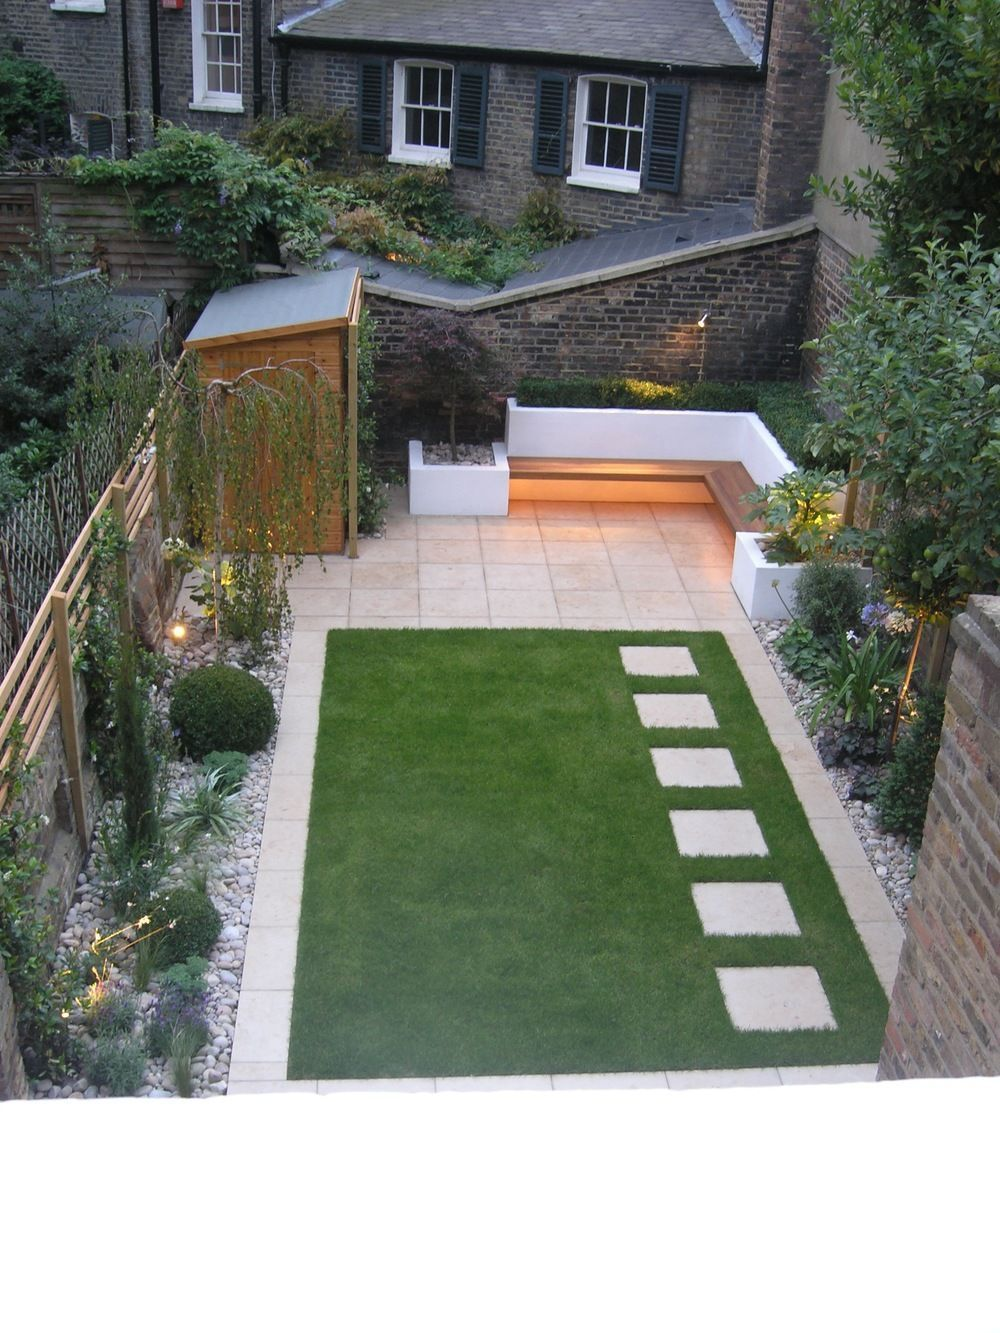 10 Simple Garden Ideas Most Of The Amazing And Also Gorgeous Back Garden Design Small Back Gardens Small Backyard Landscaping Simple garden ideas for small backyard